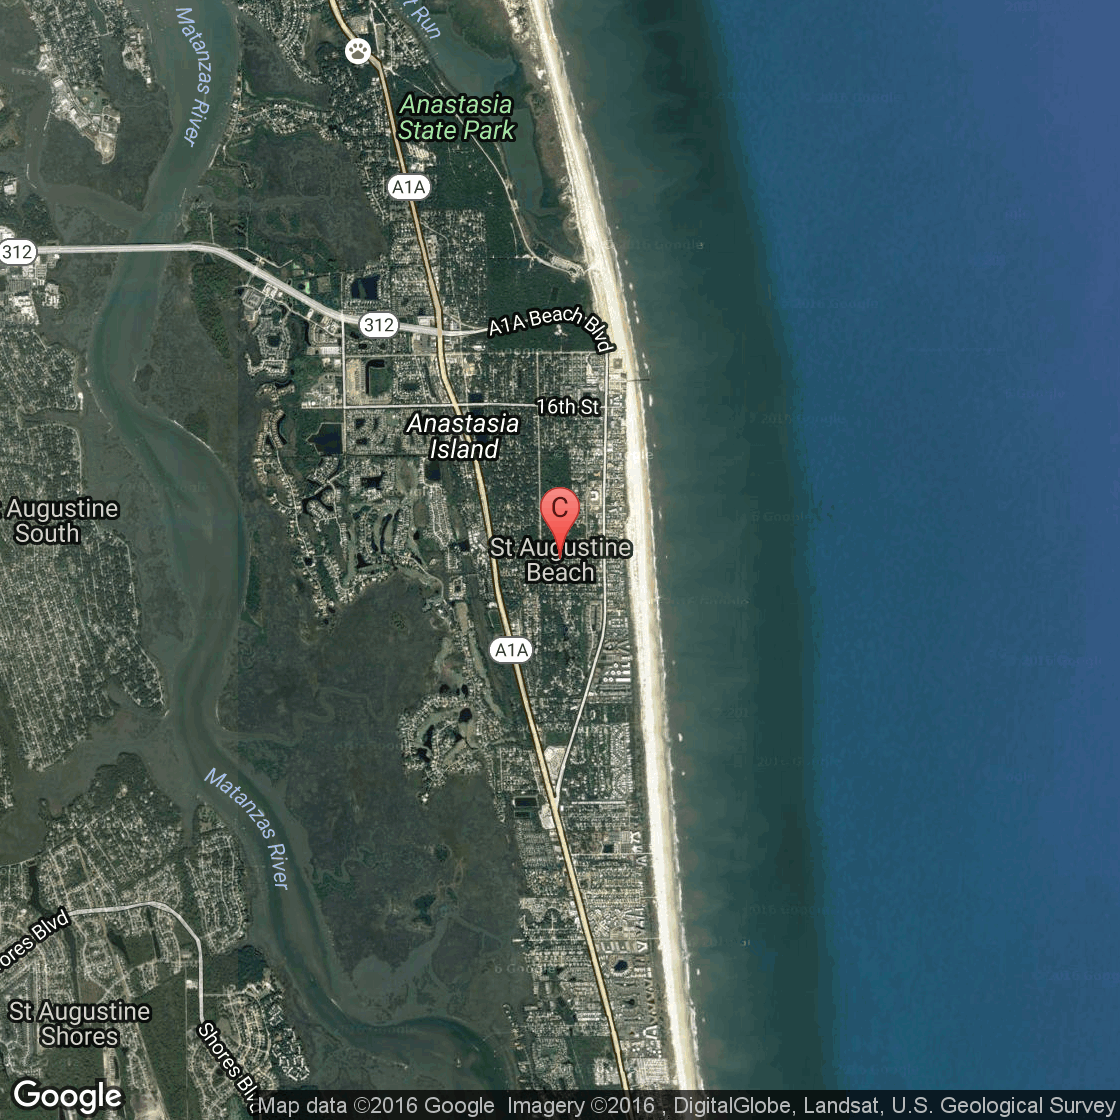 Aarp Discounted Hotels On The Beach In St Augustine Florida Usa